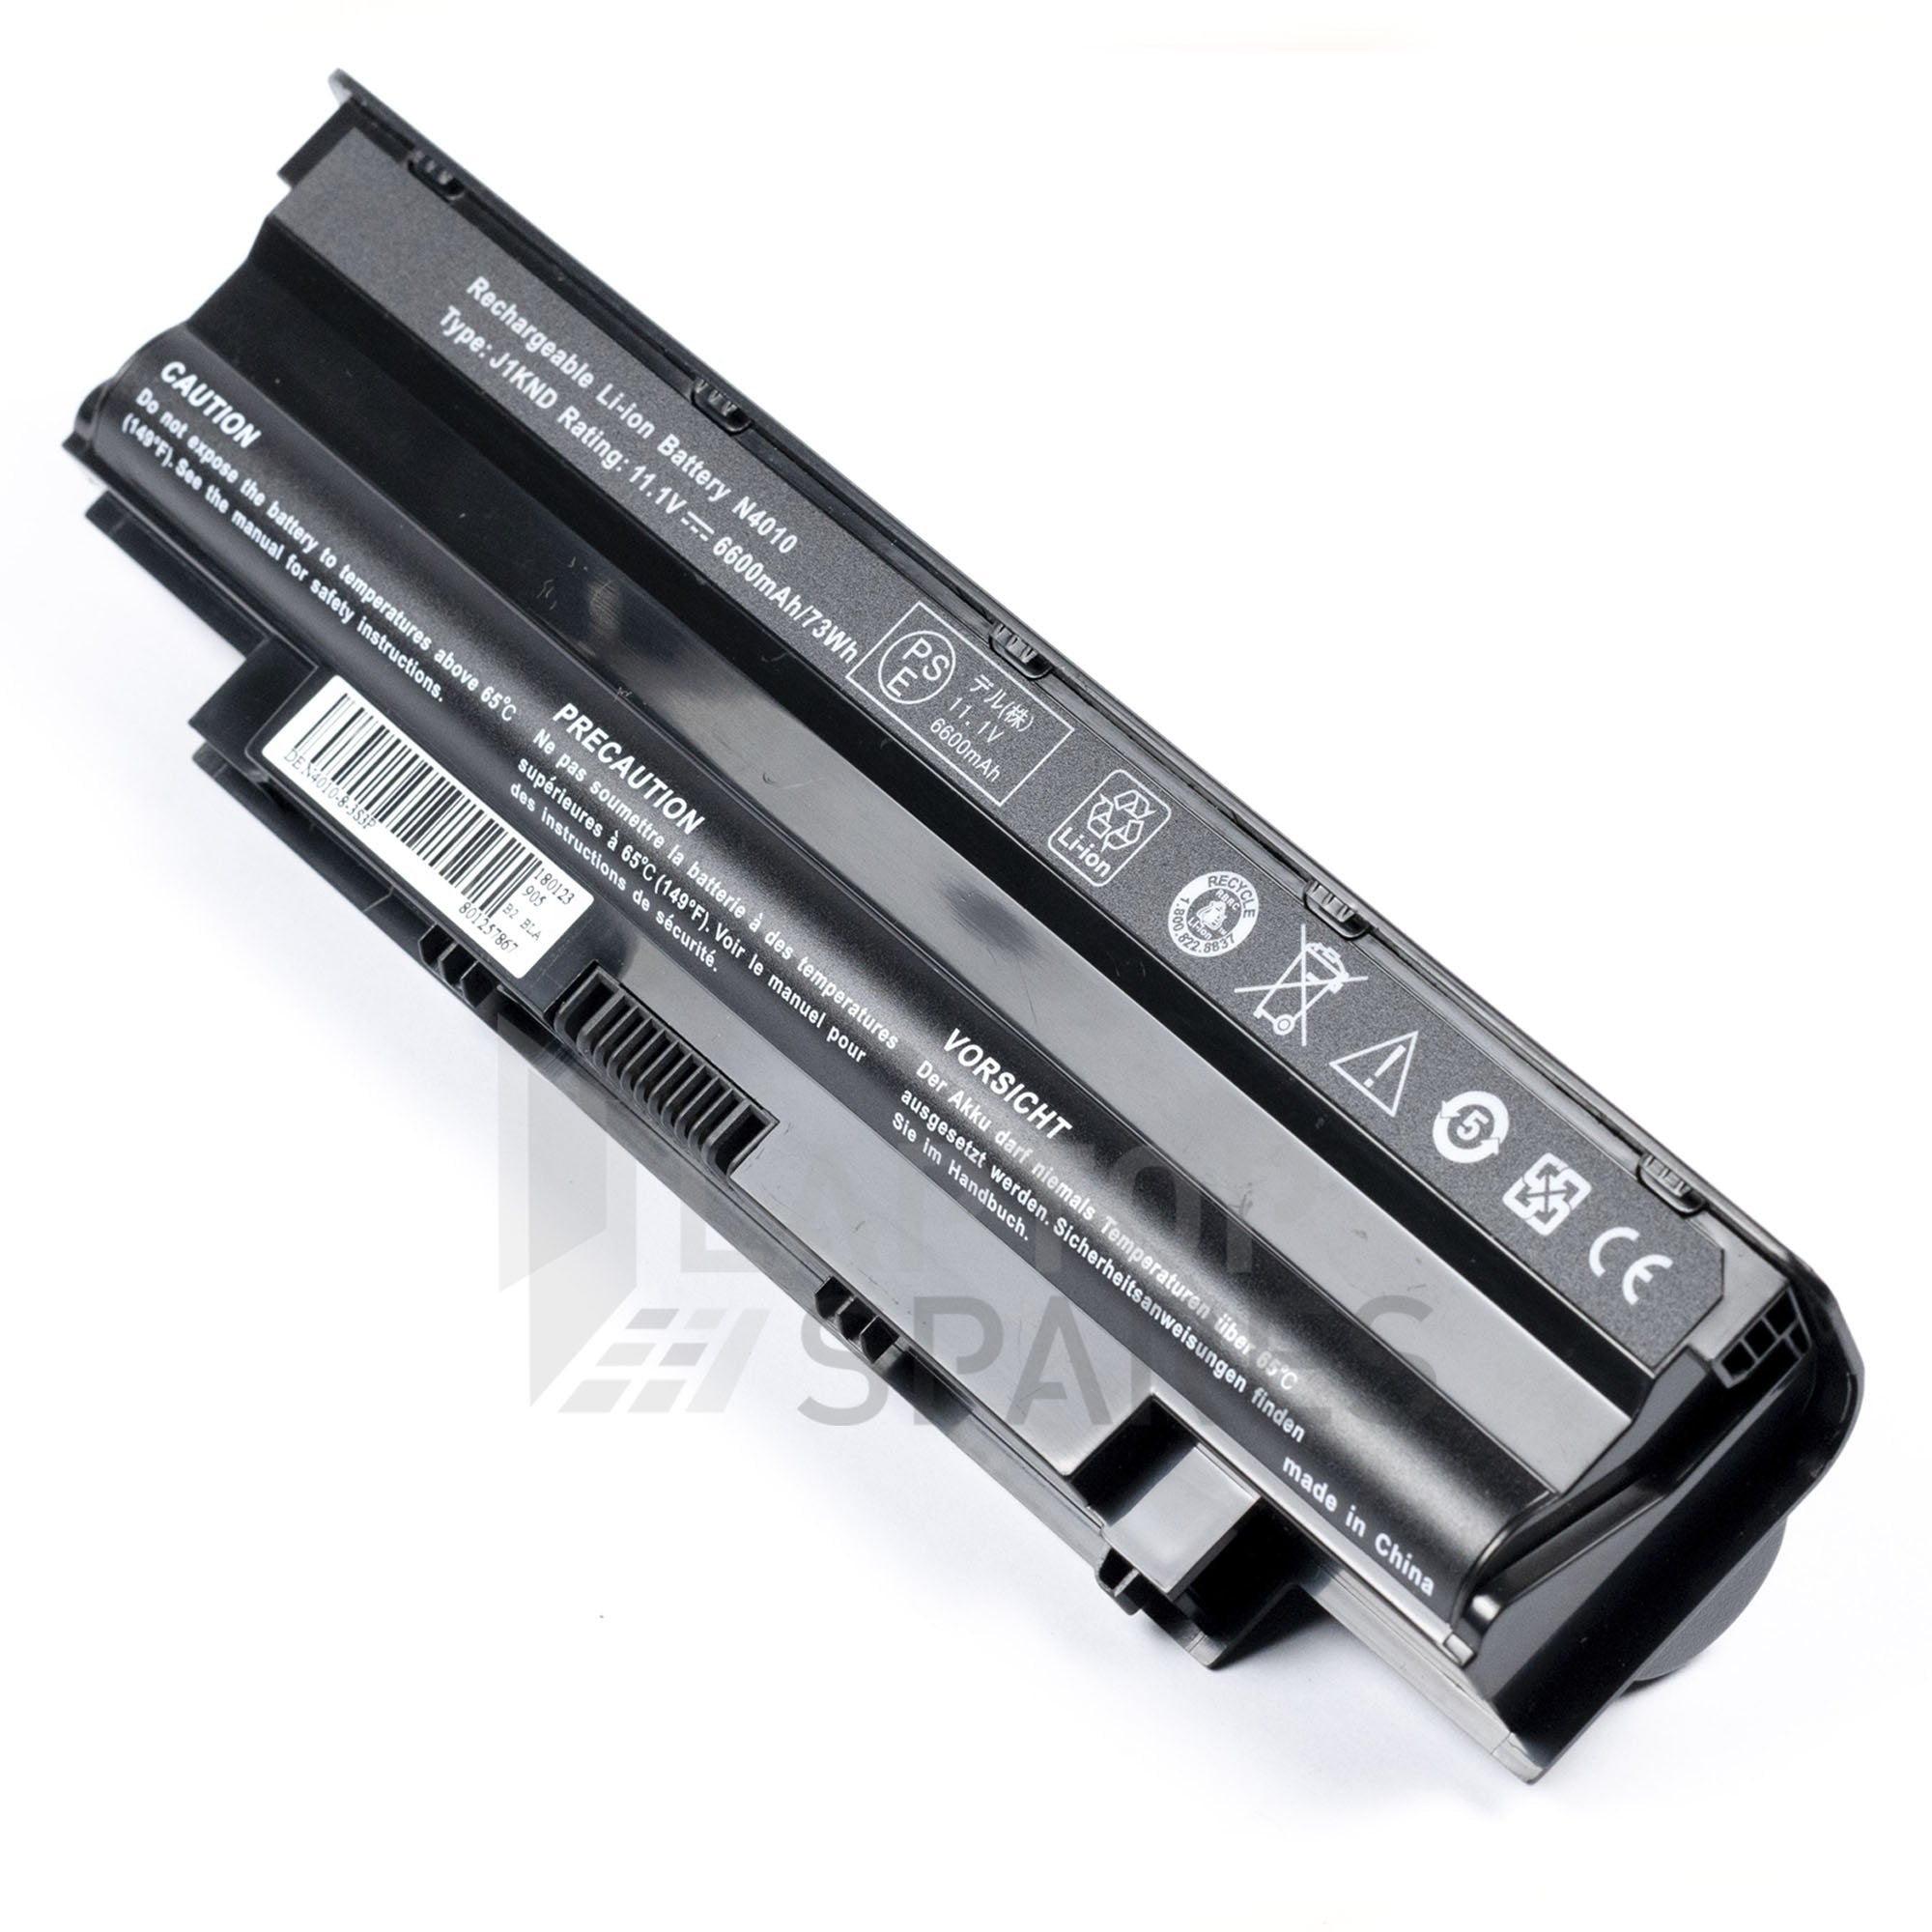 Dell Inspiron 13R 3010-D520 6600mAh 9 Cell Battery